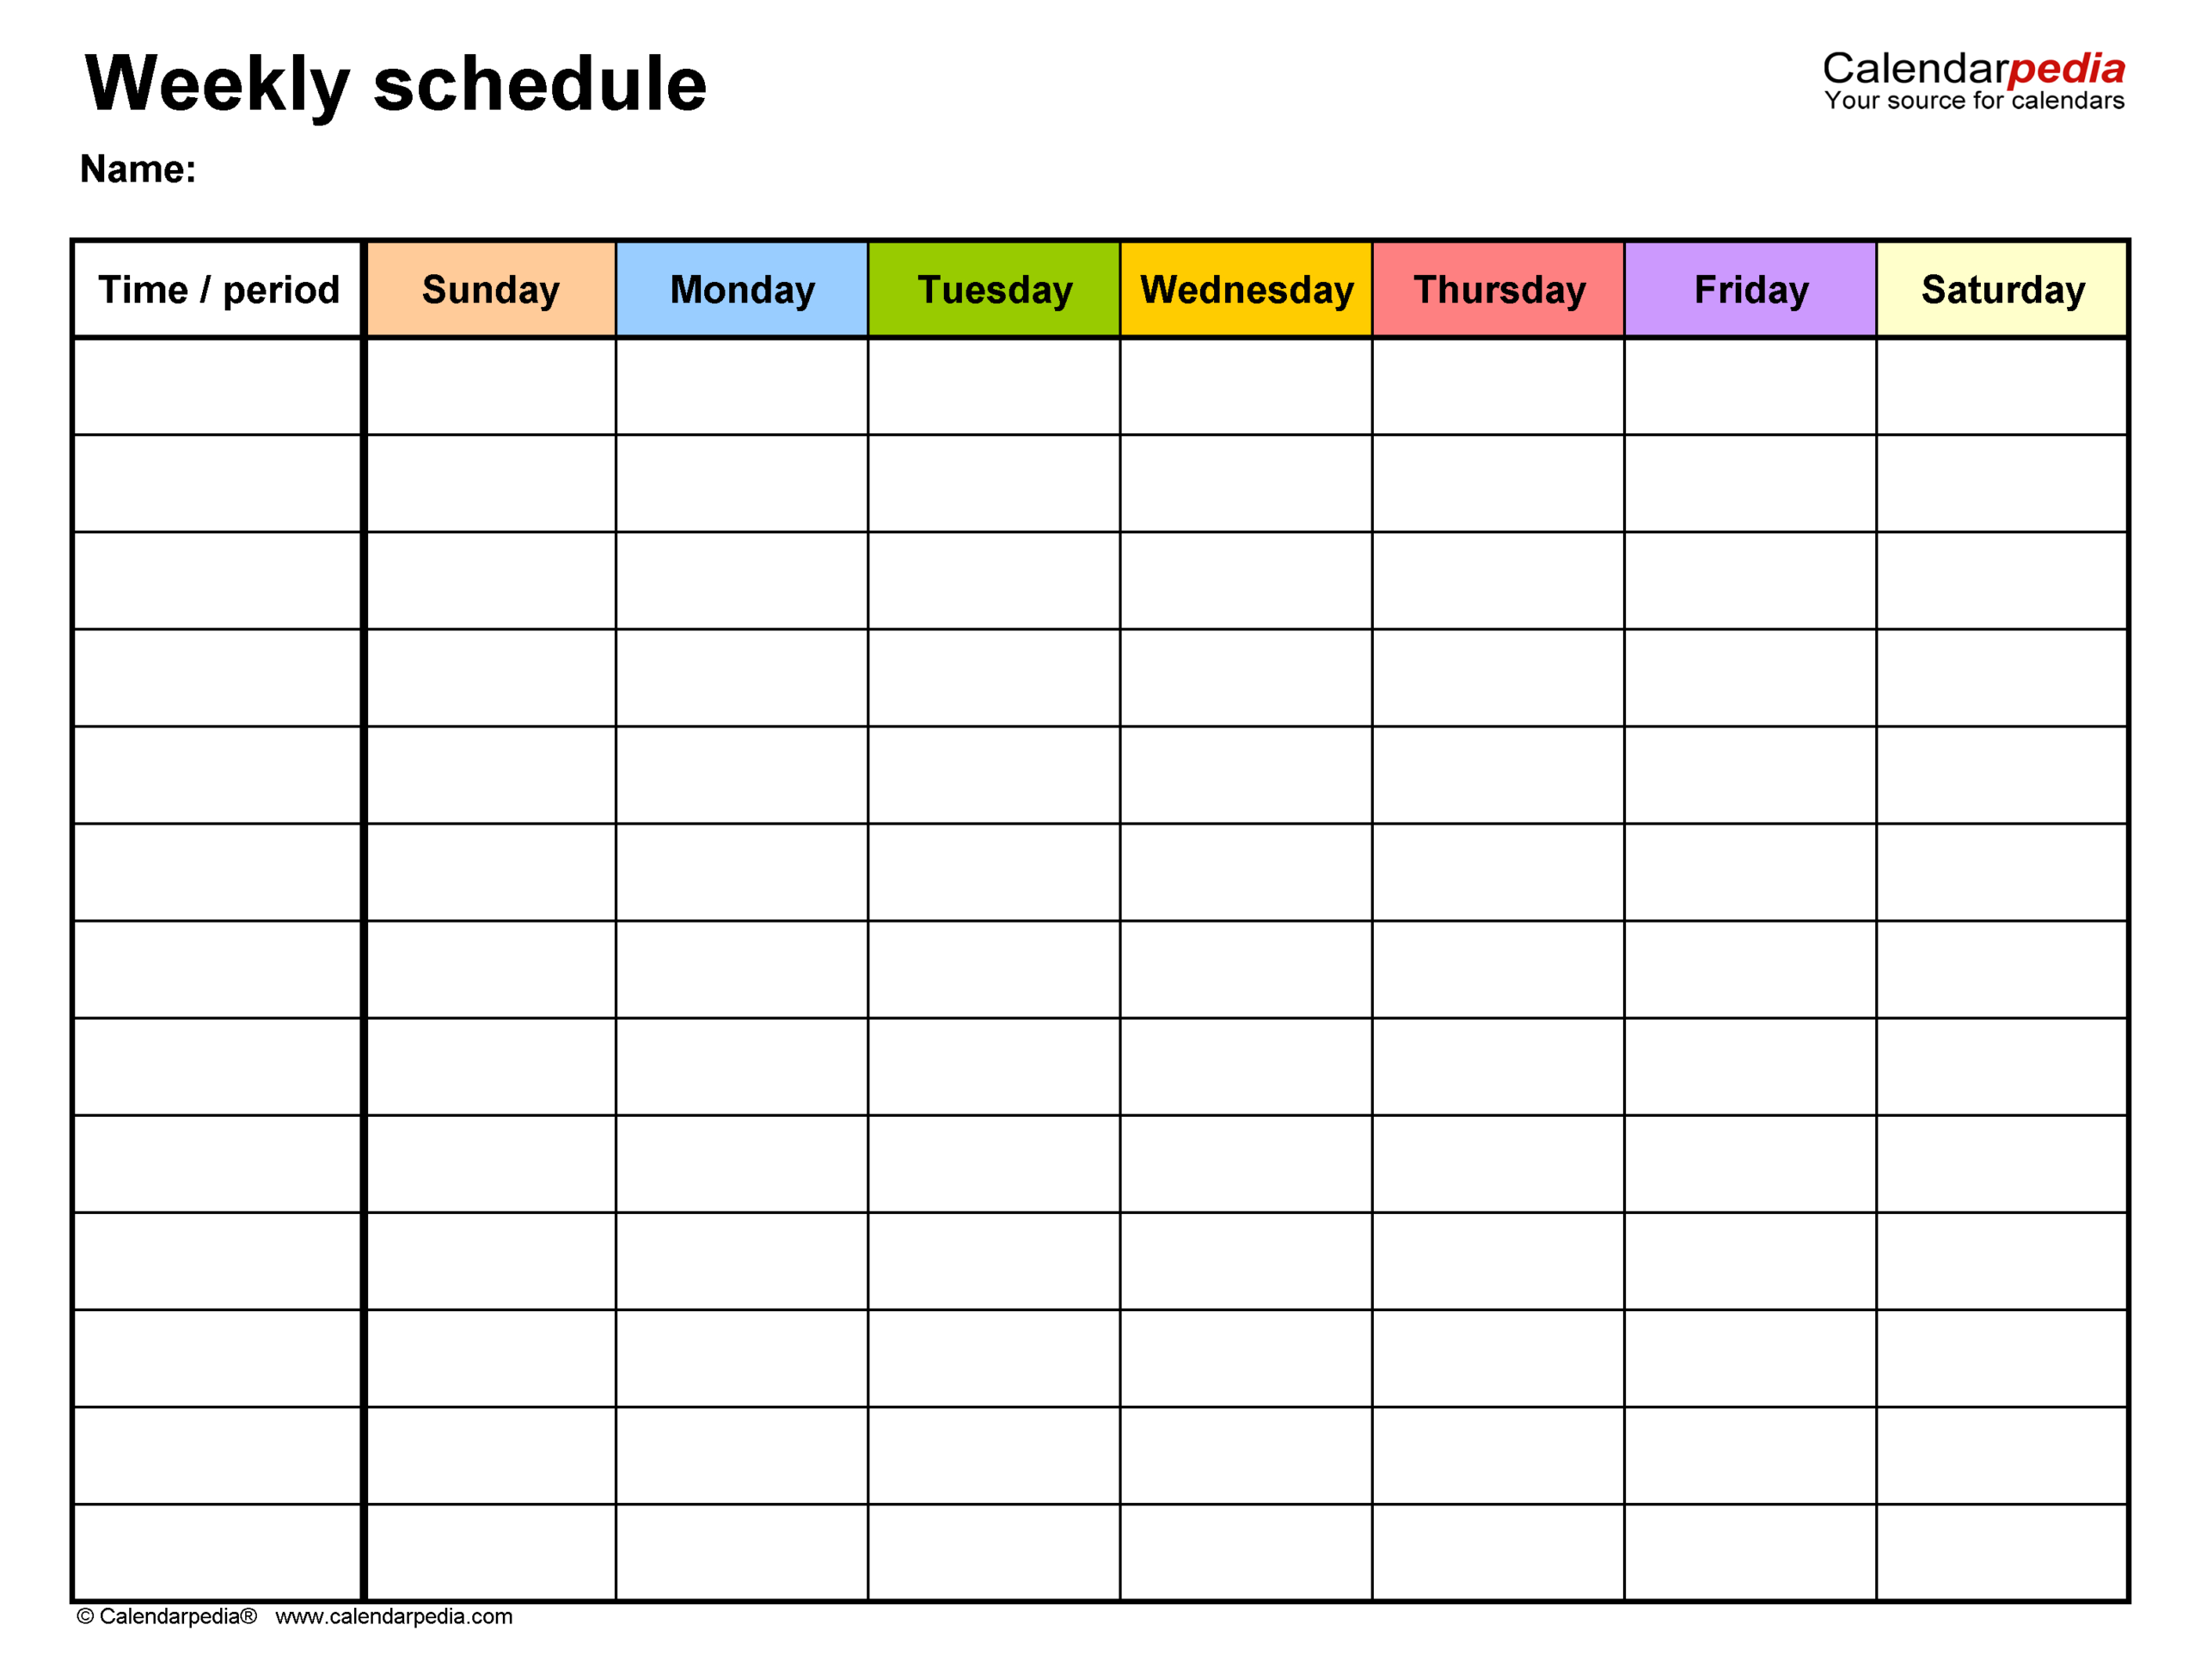 Free Weekly Schedule Templates For Word  18 Templates for Microsoft Word Templates Calendar